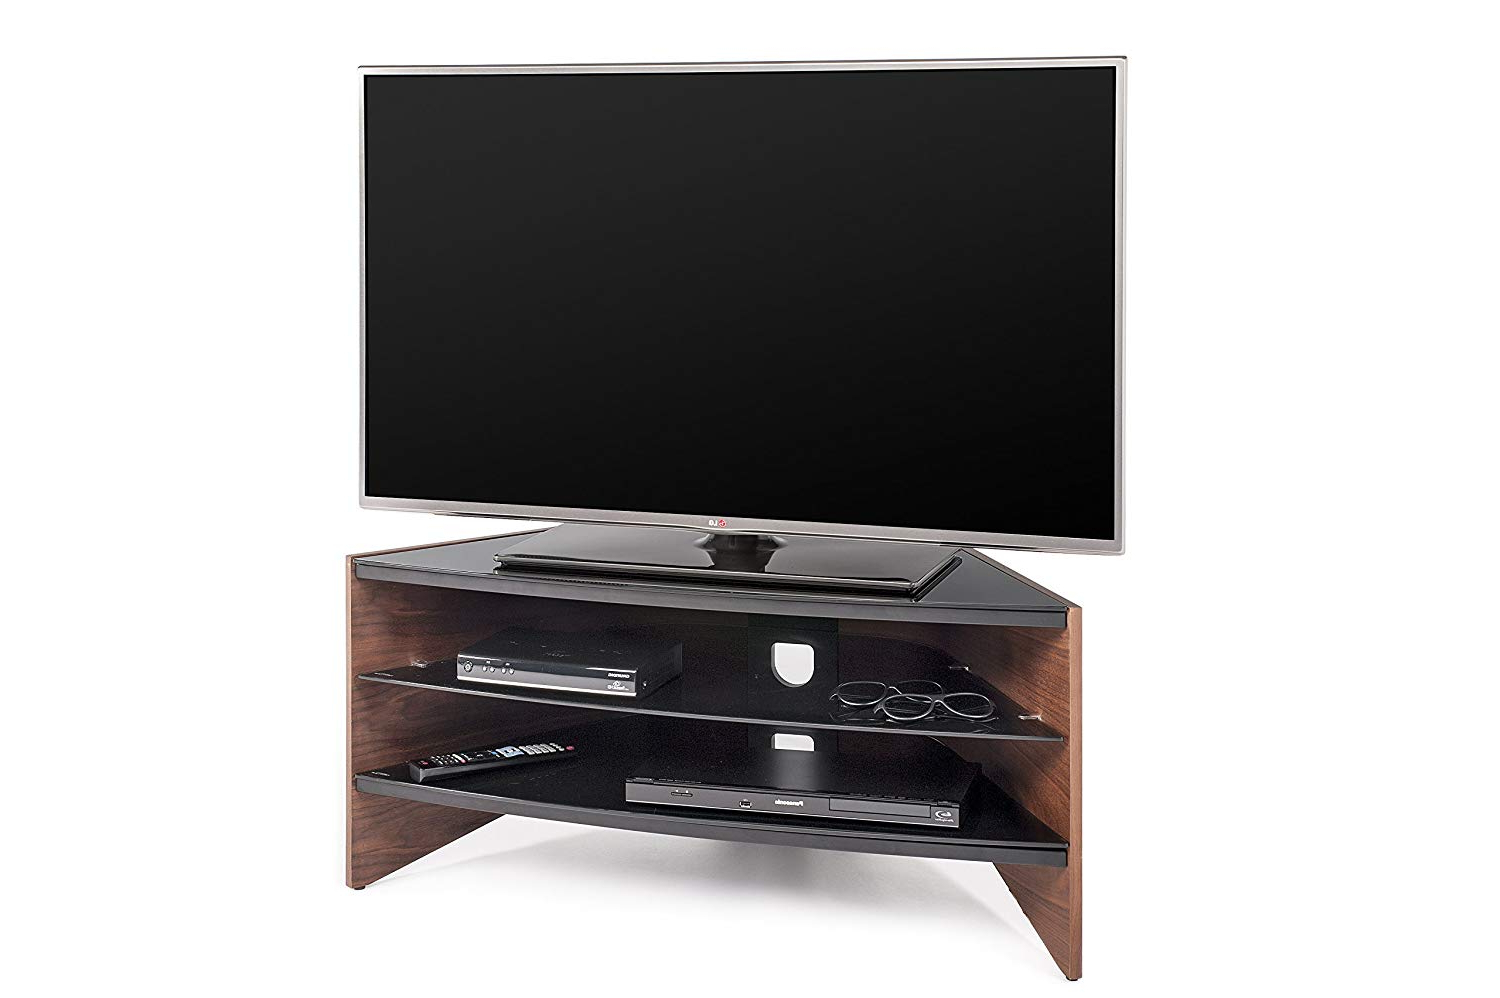 Well Liked Techlink Riva Tv Stand / Tv Unit / Tv Furniture Cabinet For Living Inside Techlink Riva Tv Stands (View 4 of 20)